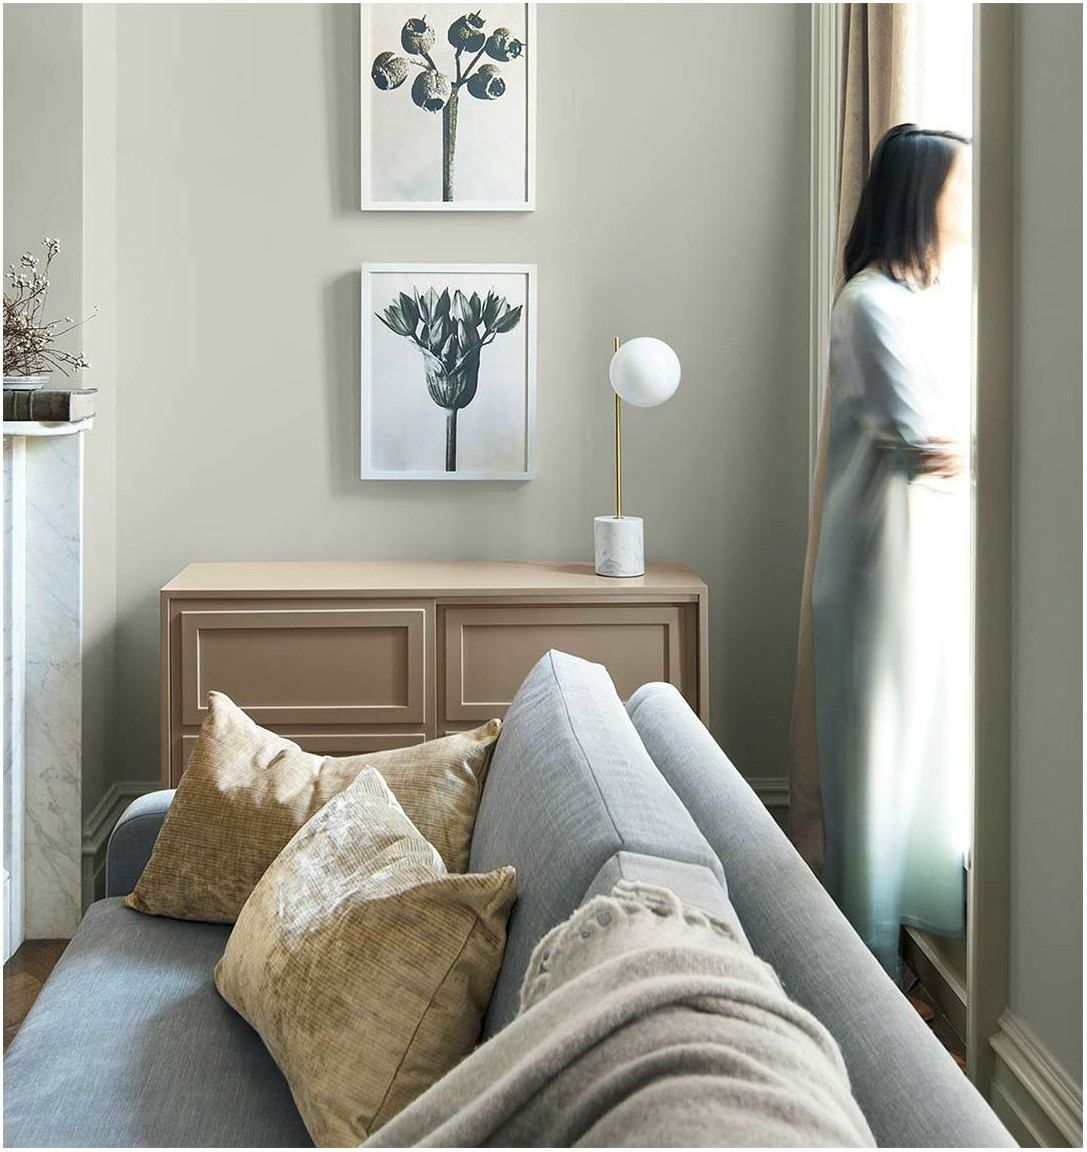 most popular living room paint colors 2019 with images on most popular wall paint colors id=67568